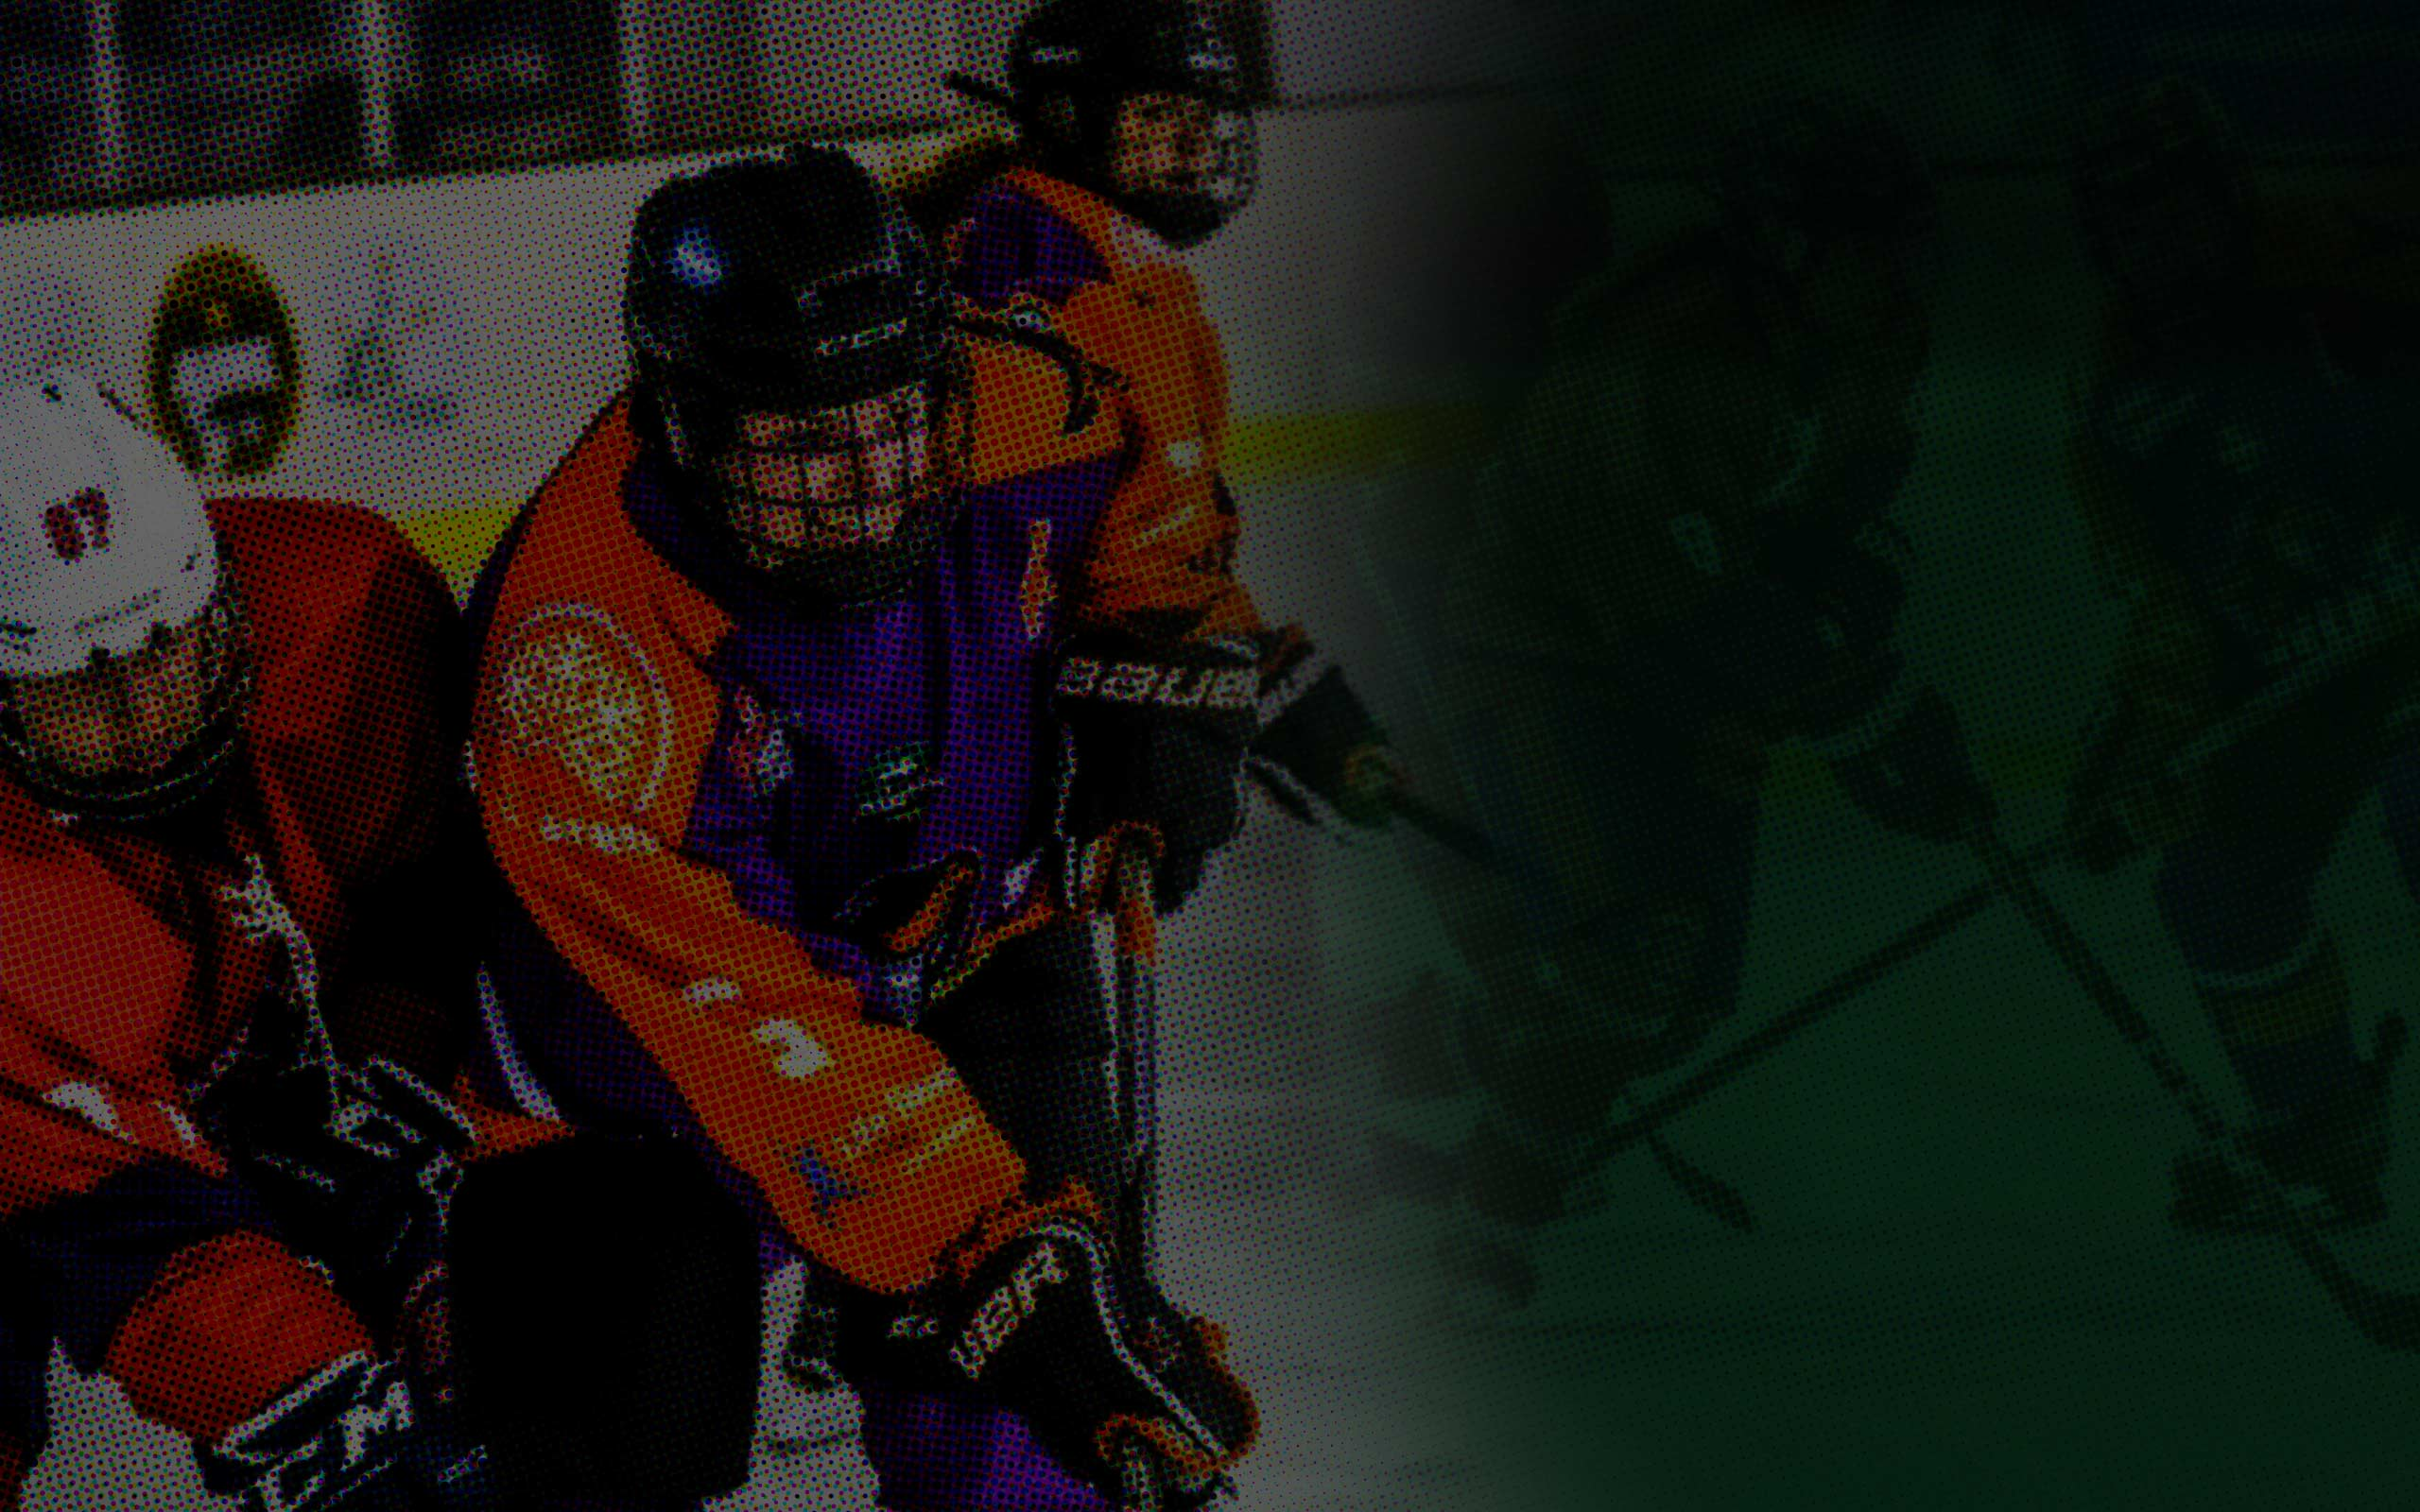 Australian Women's Ice Hockey League - Perth Inferno home games at Cockburn Ice Arena